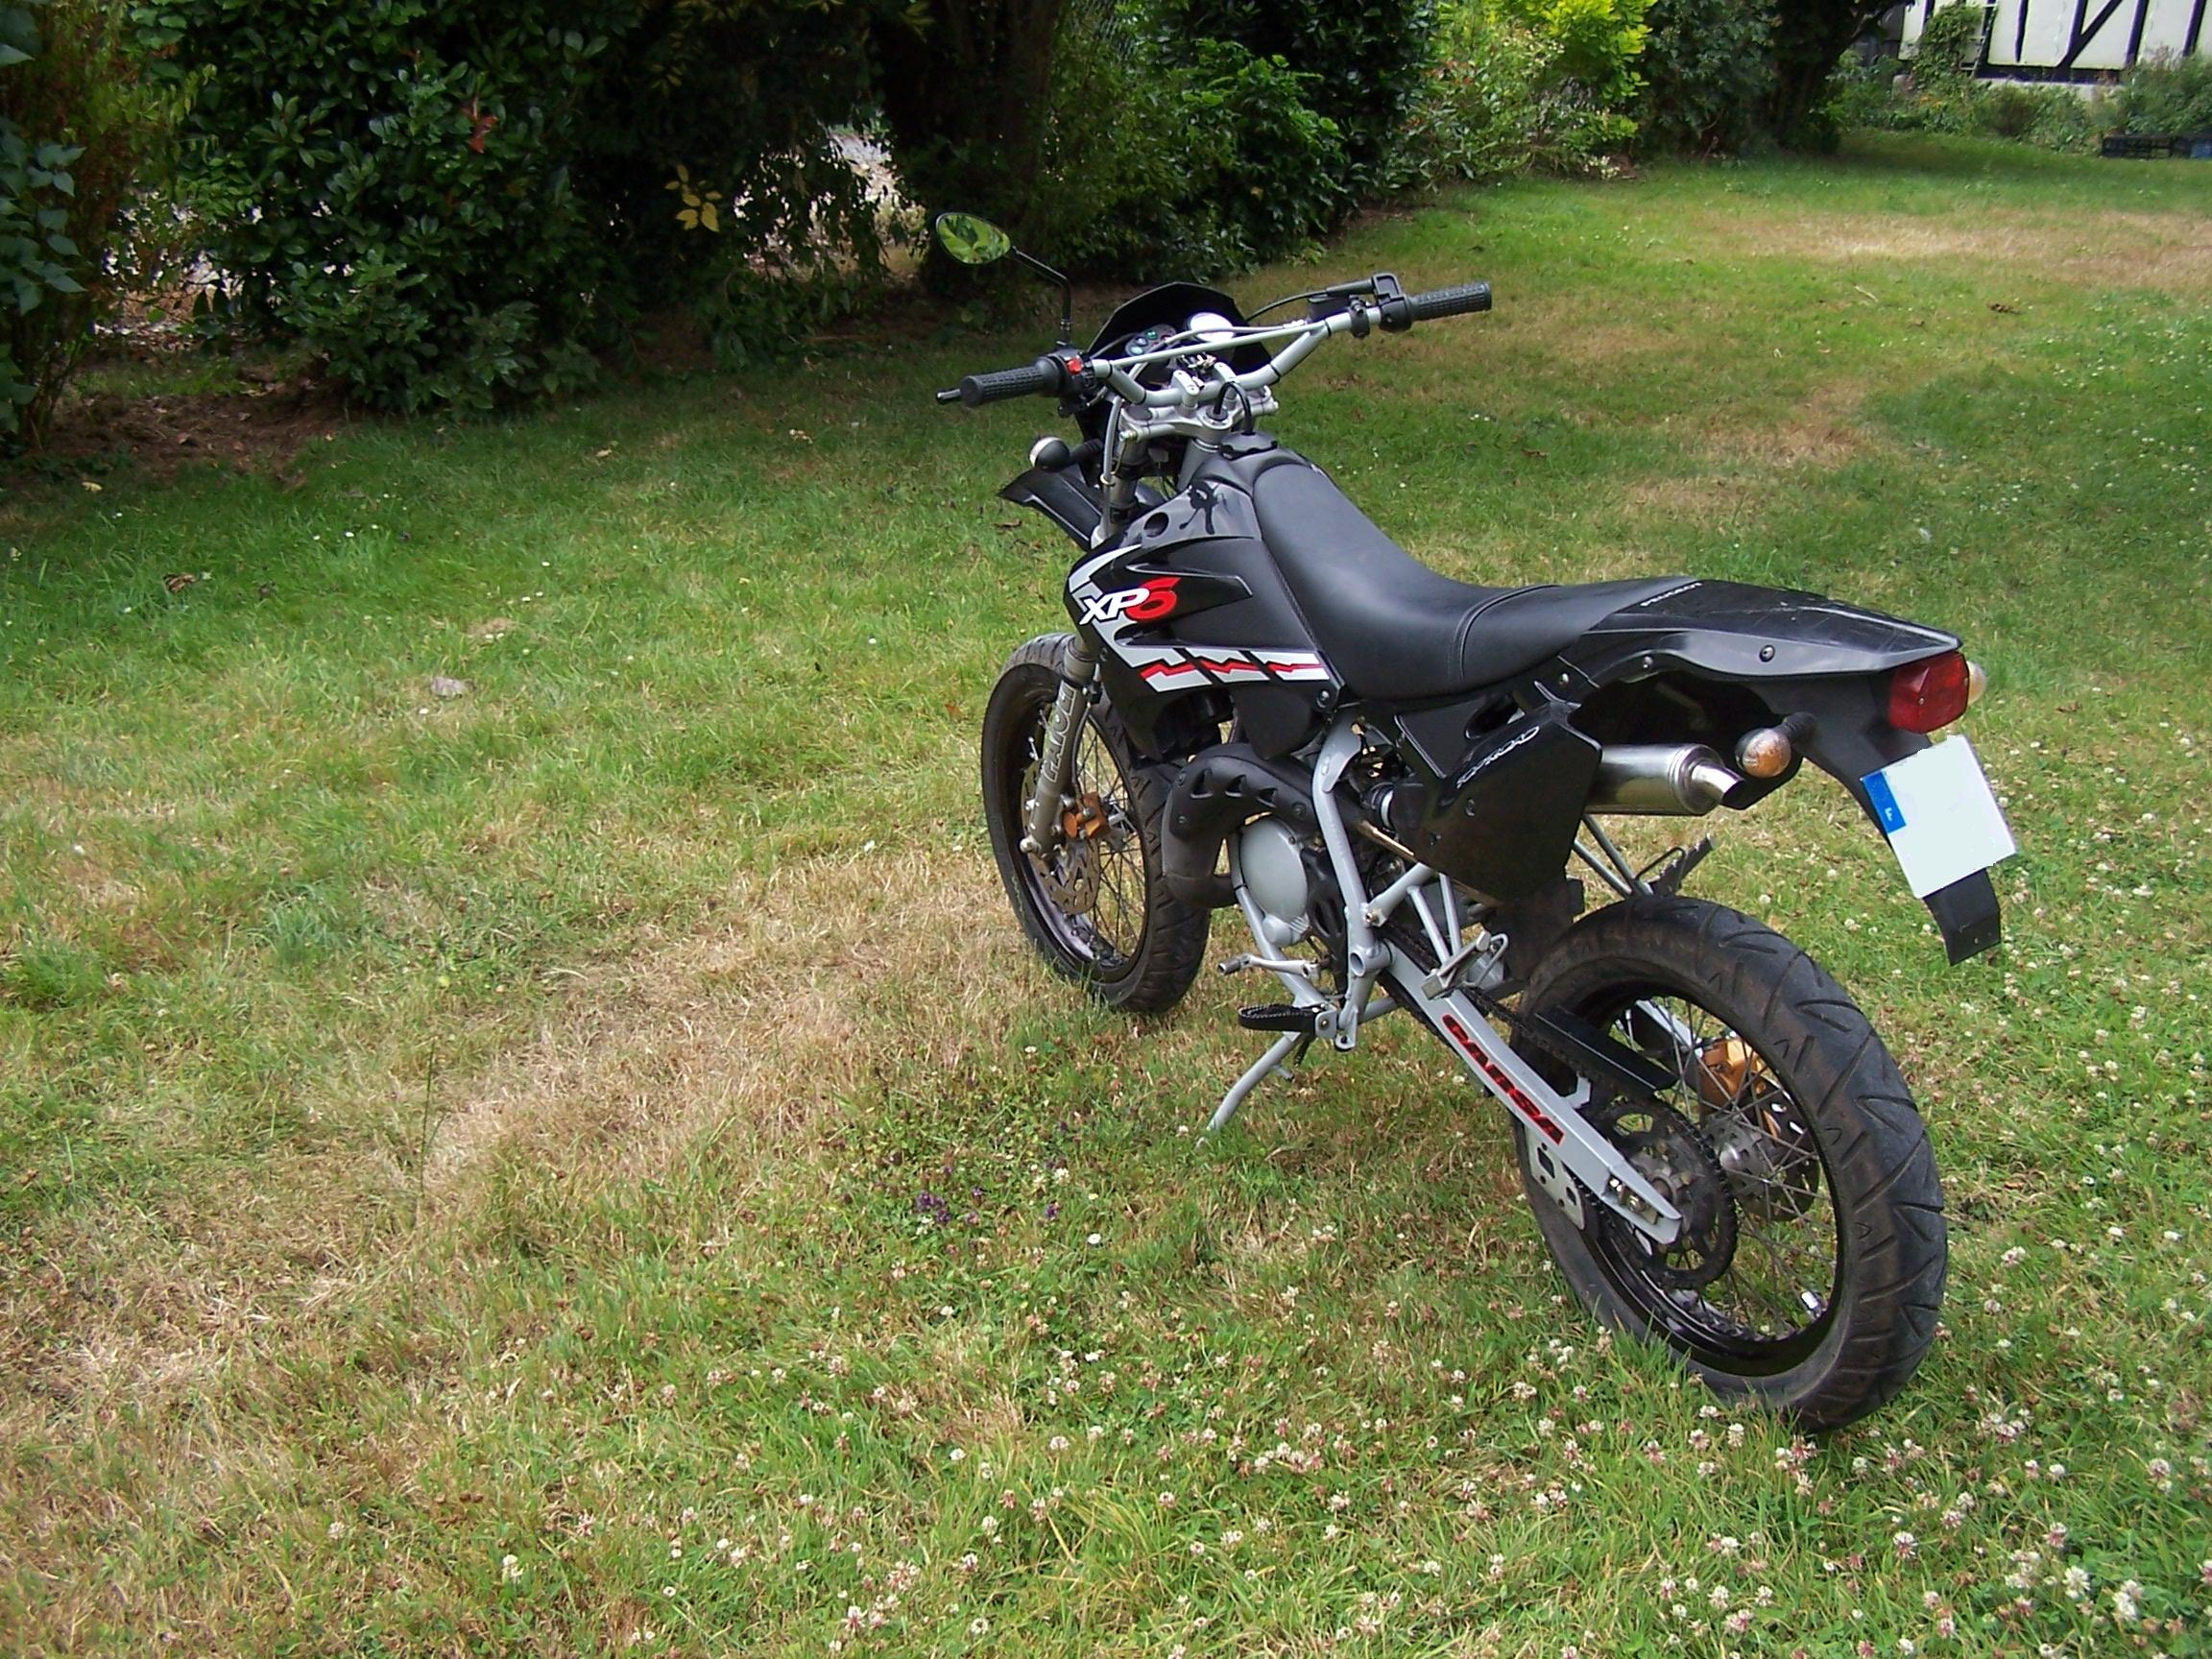 Peugeot XP6 50 Supermotard 2006 images #120120